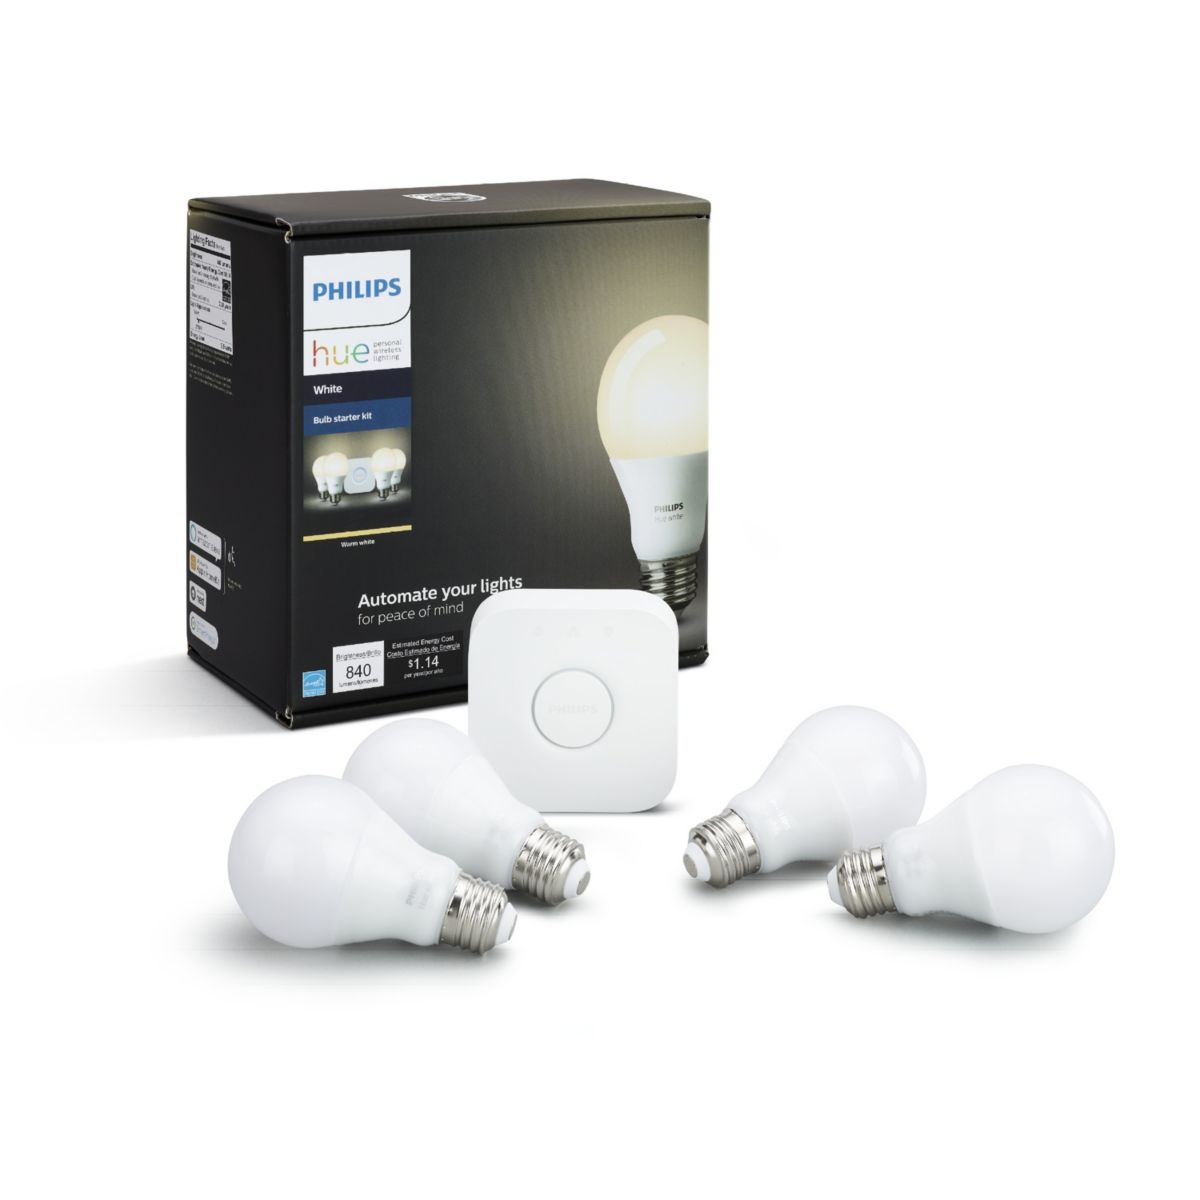 ee50cc42526f8 Hue products - Meethue | Philips Lighting